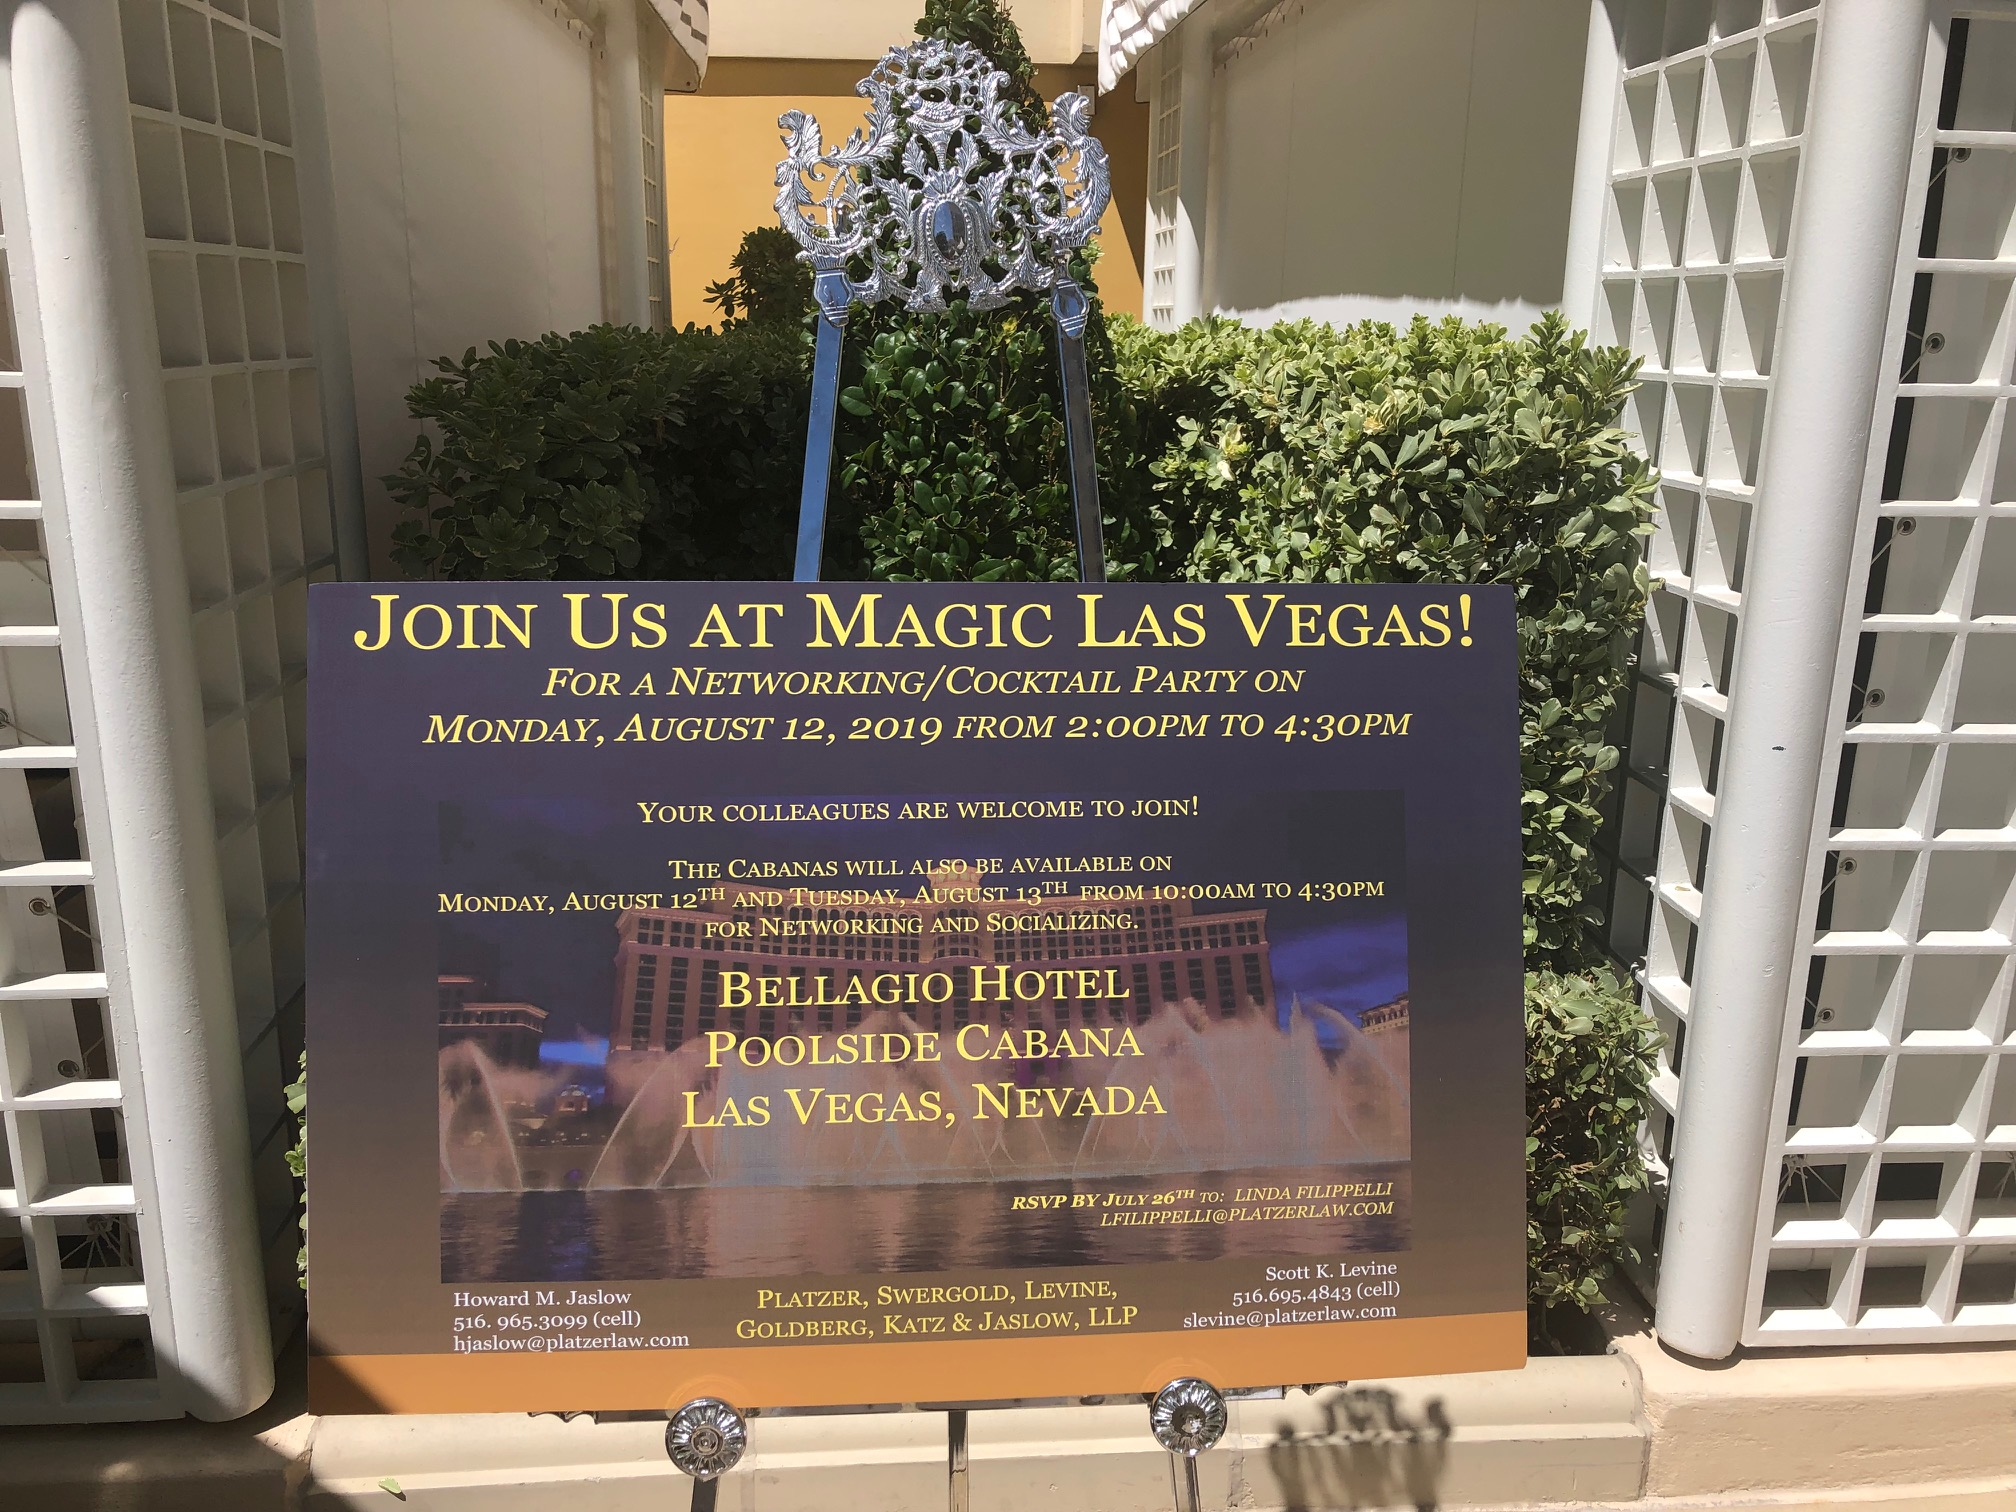 Join us at Magic Las Vegas | Sign (close up)